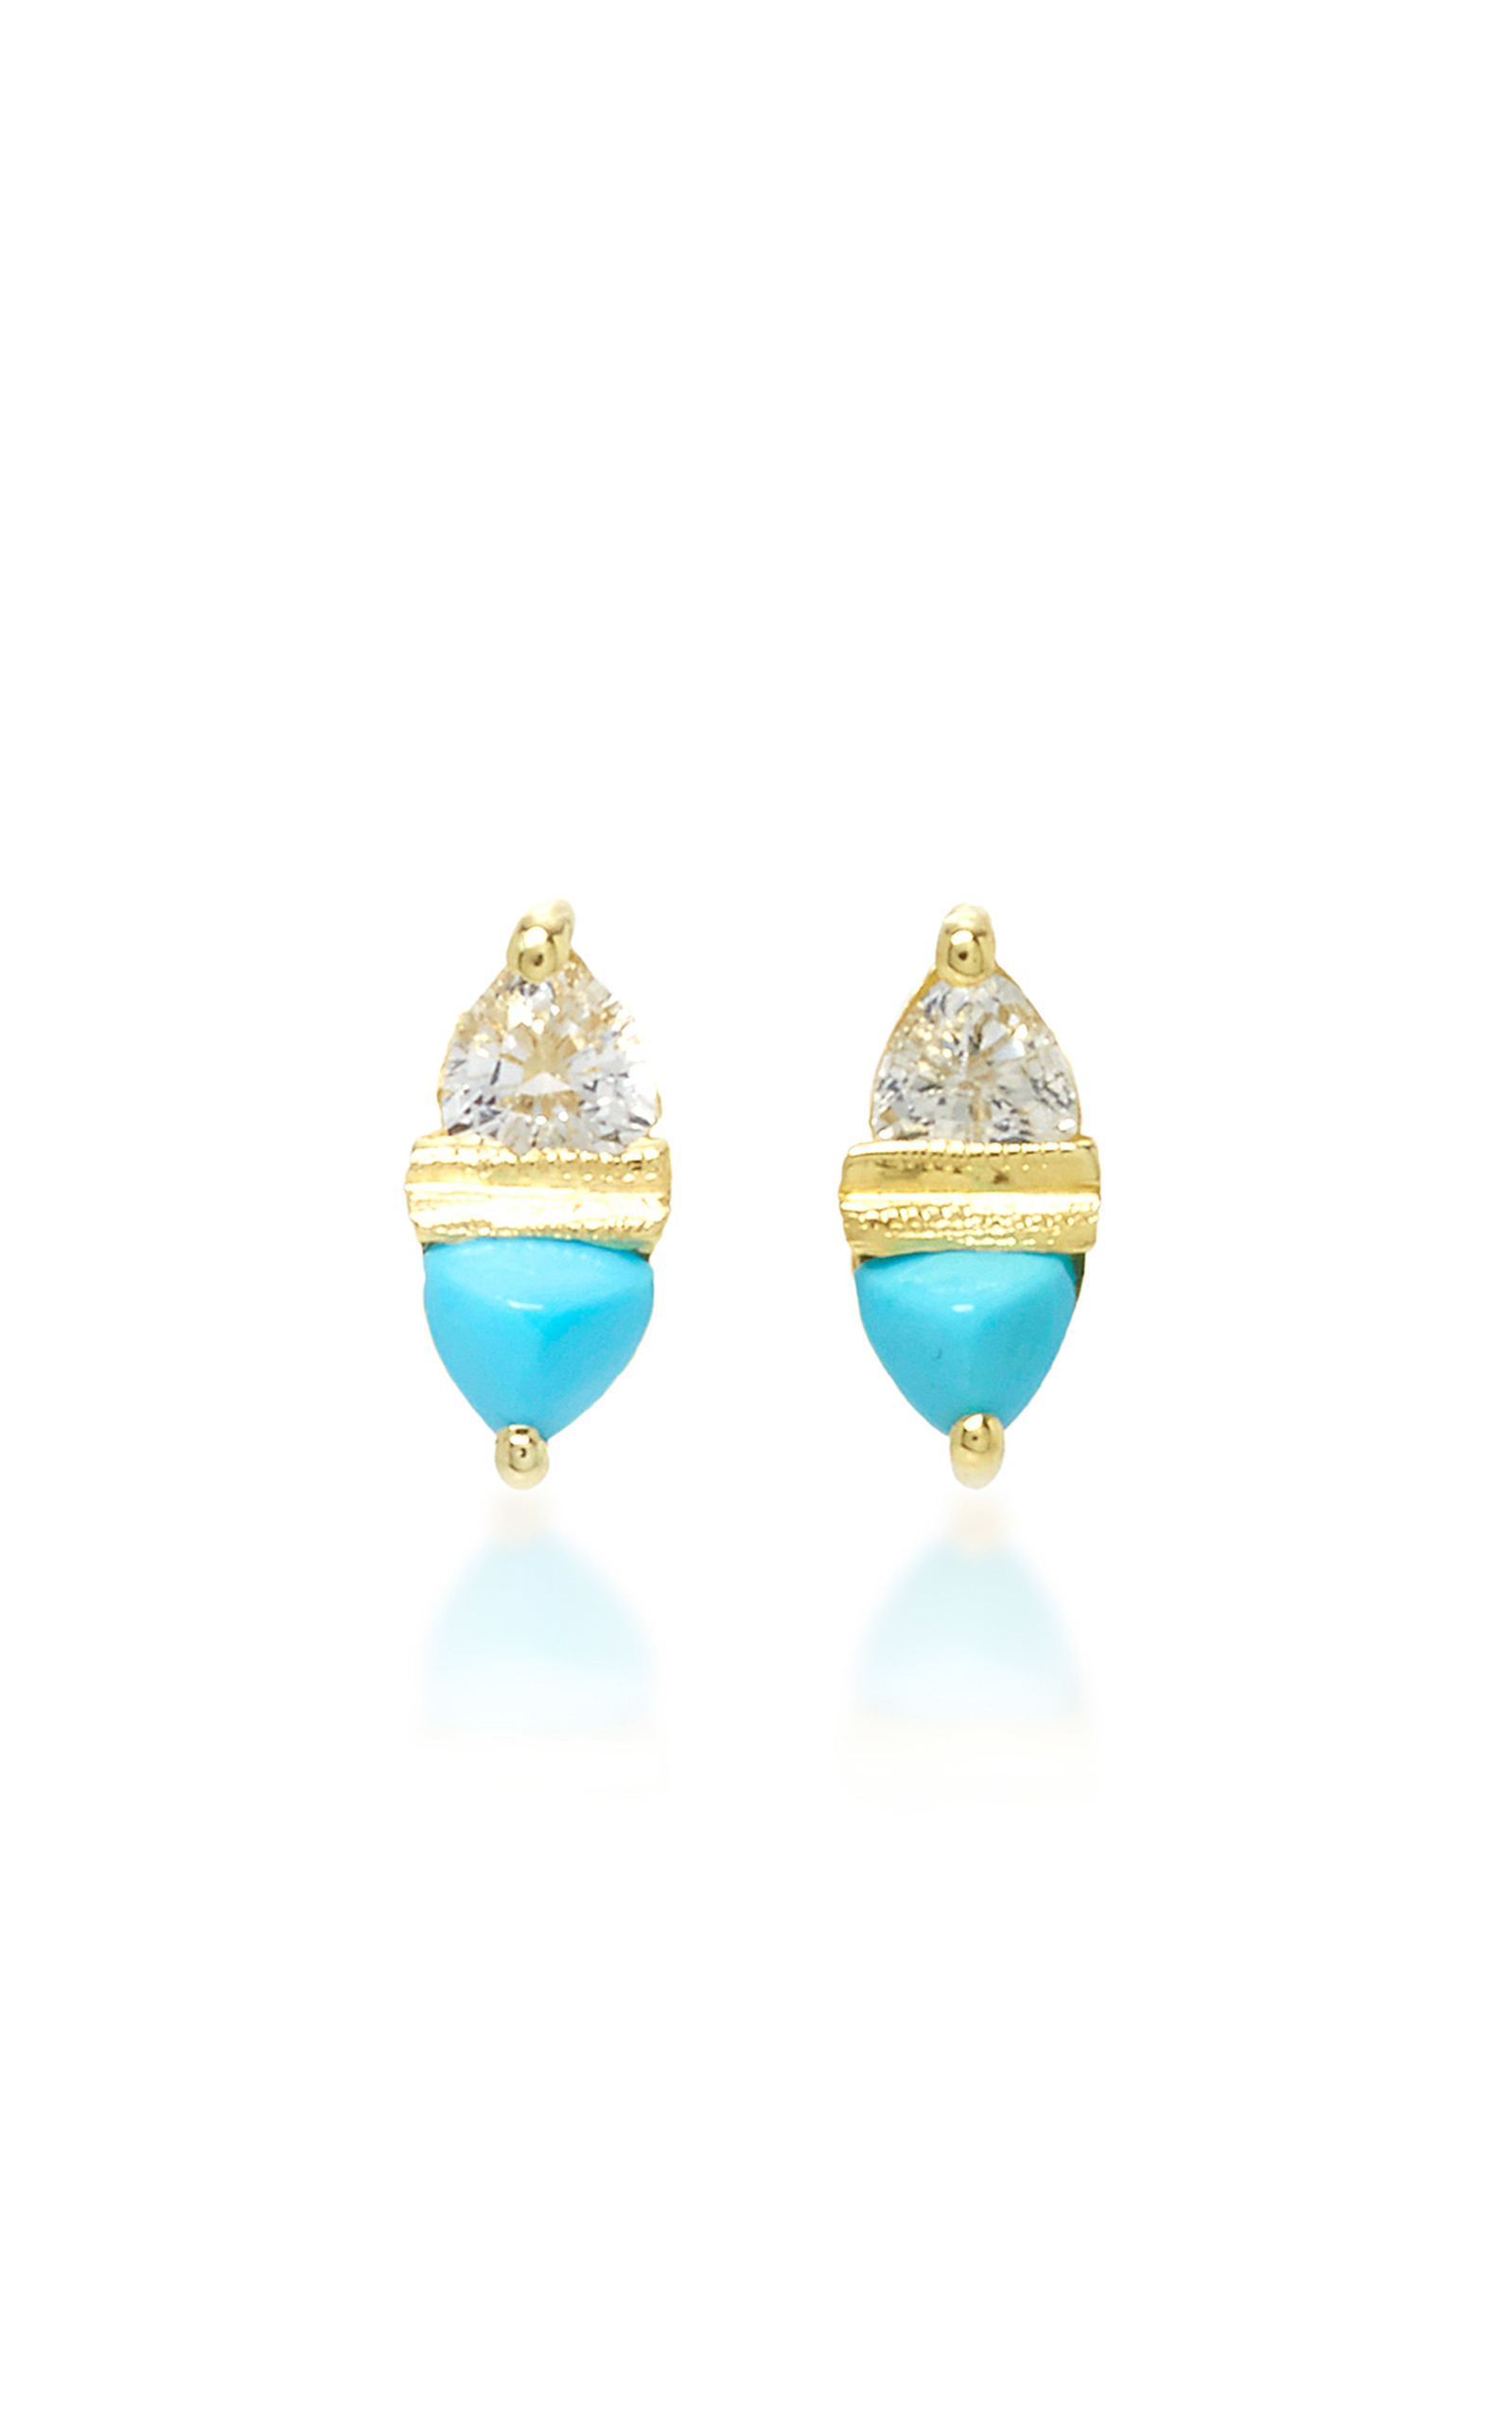 shop for min turquoise silver her stud drop gifts earrings ml